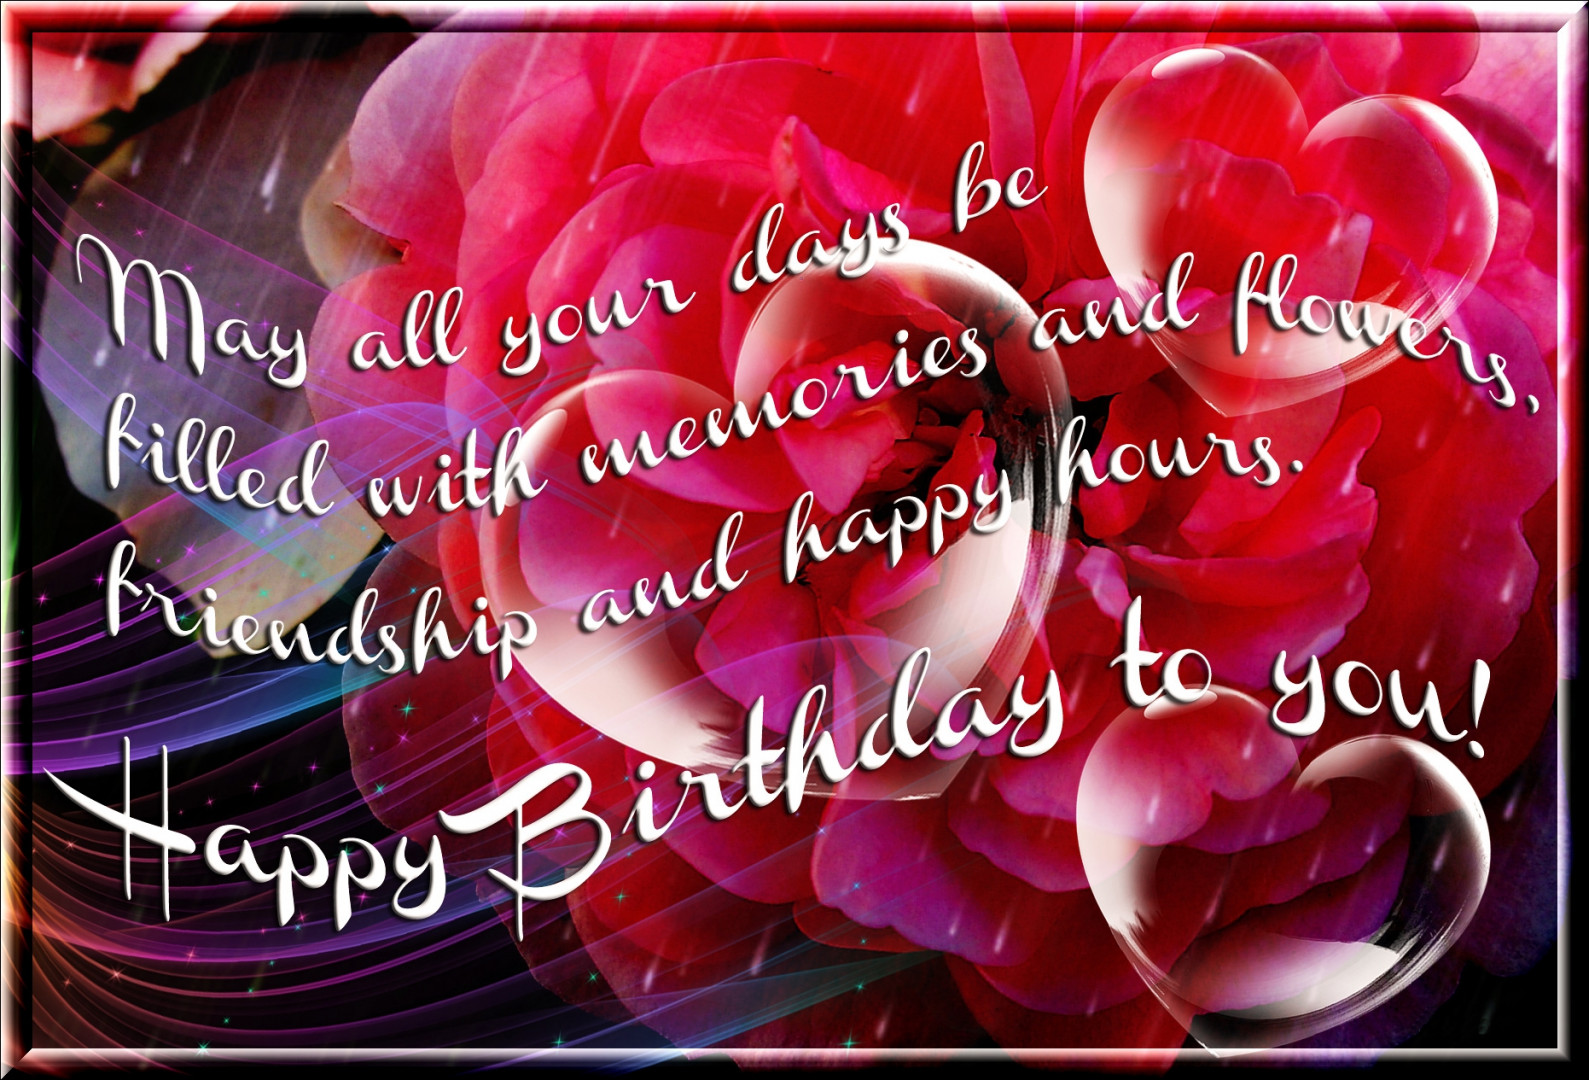 happy birthday wishes wallpaper download ; new-pics-photos-happy-birthday-wishes-free-wallpapers-of-happy-birthday-wishes-image-download